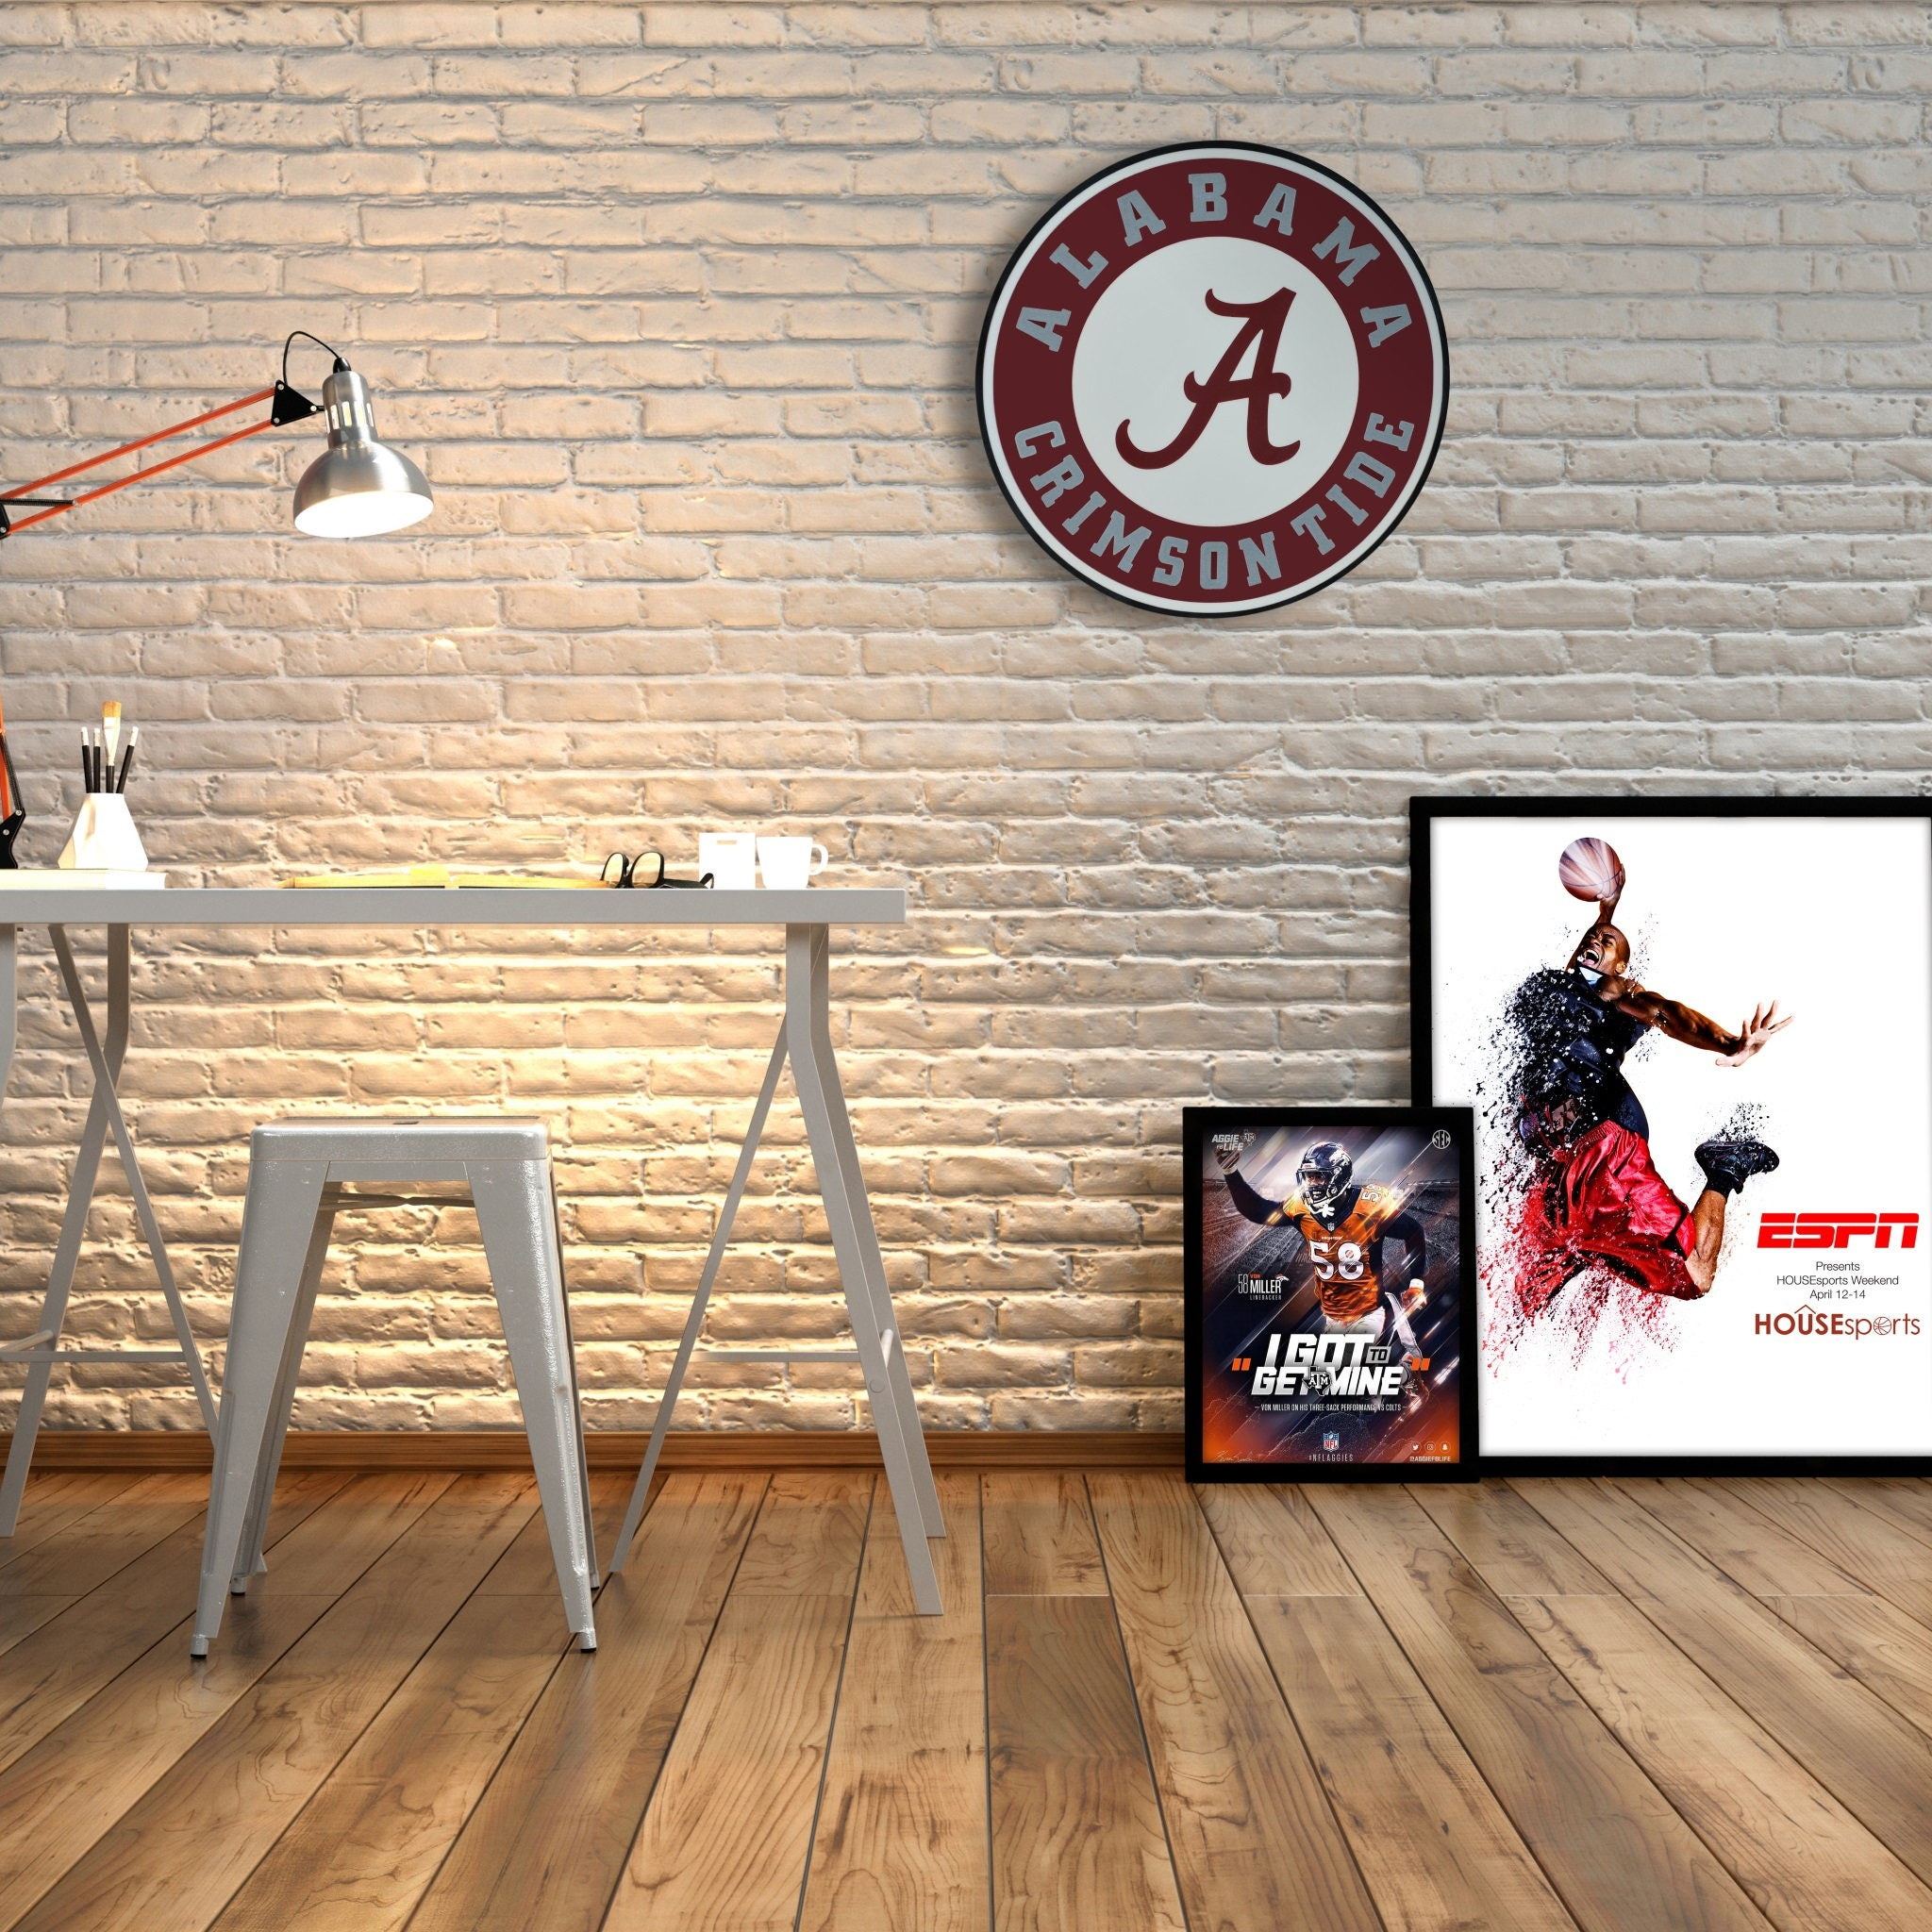 Alabama Crimson Tide Decor|Wall Decor|Boy Room Decor|Boy Football Decor|